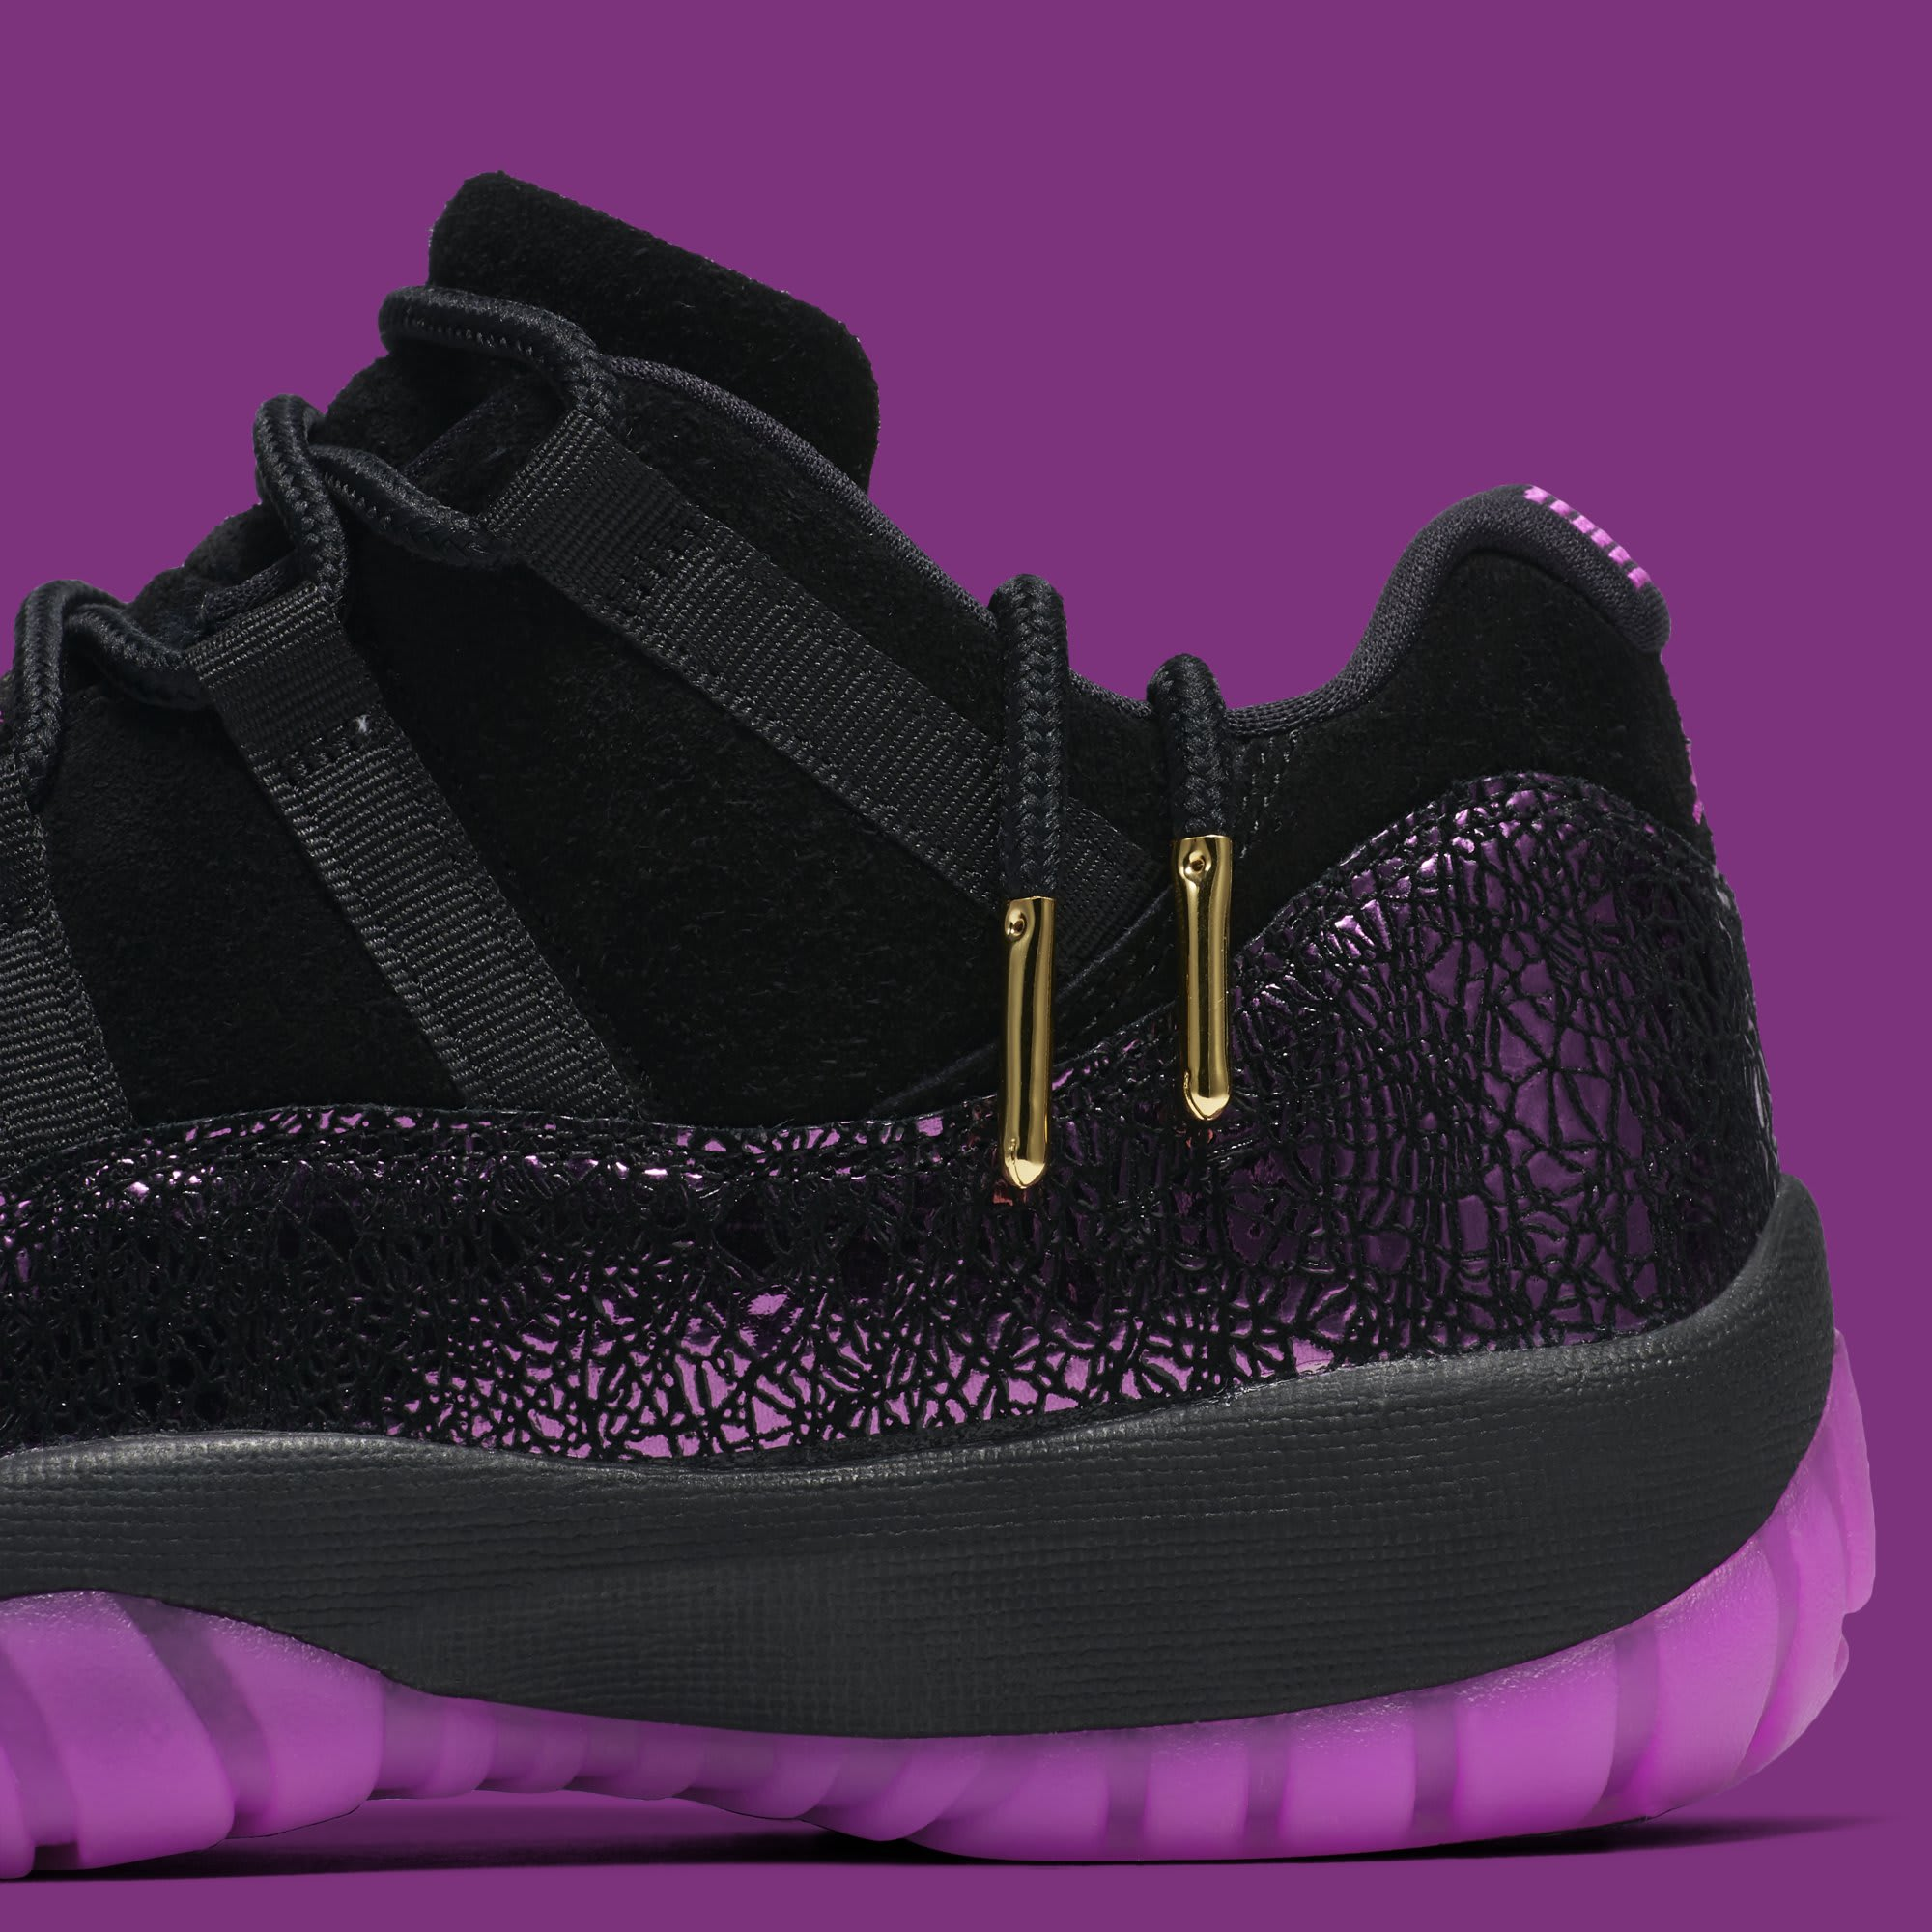 Air Jordan 11 Low 'Rook to Queen' AQ5149-005 (Detail)